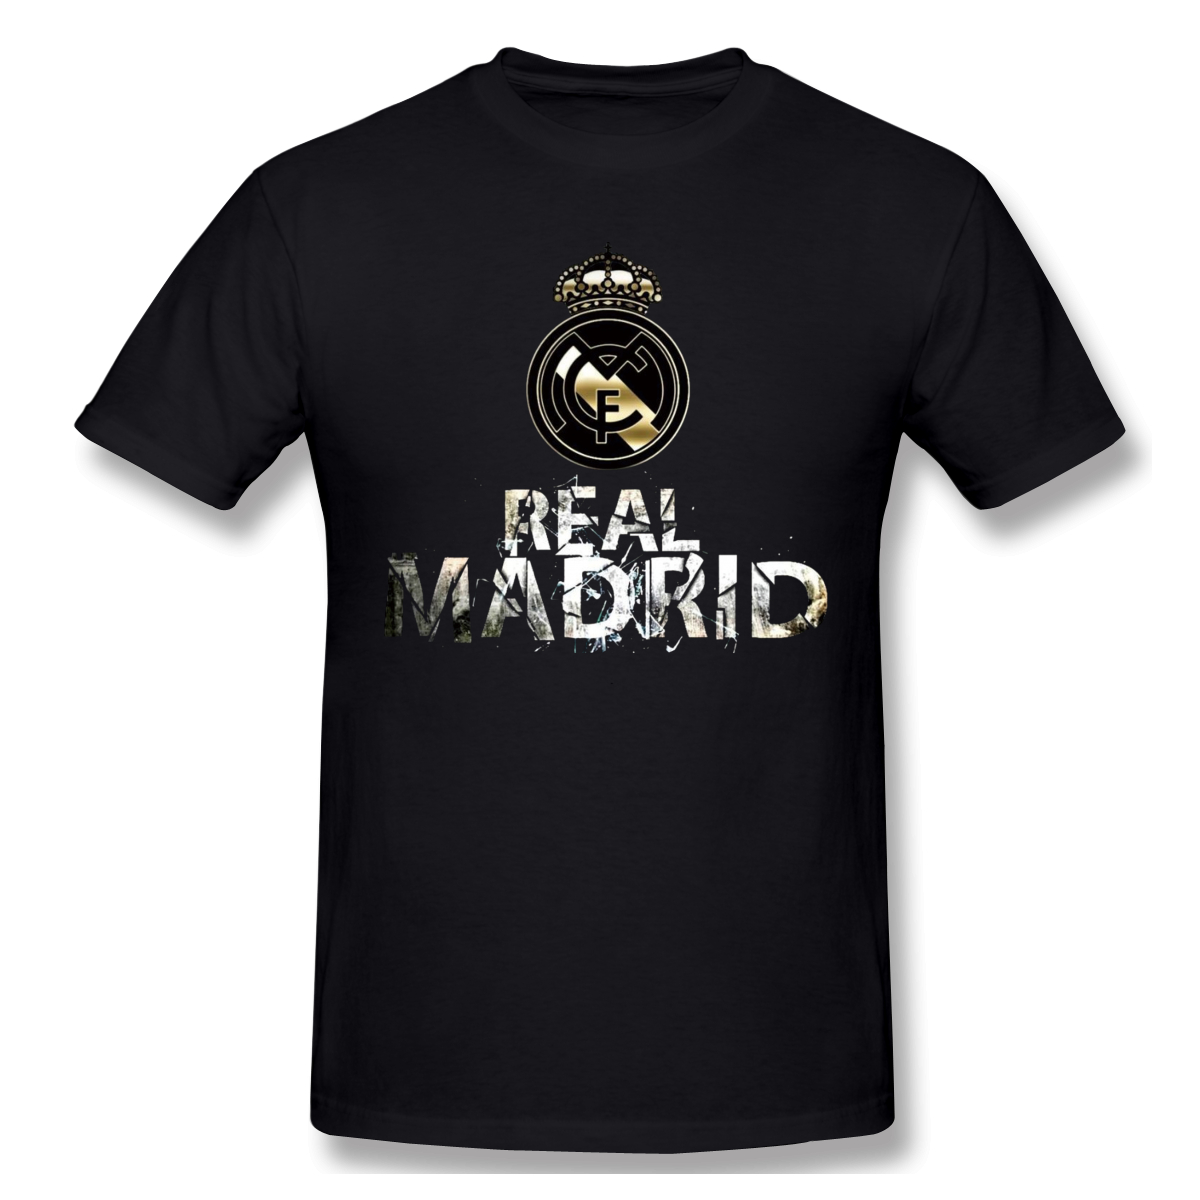 Cool Real Madrided Logo Funny T-Shirt Men Women Summer O Neck Casual Cotton T Shirt Graphic Tee Crew Neck Top